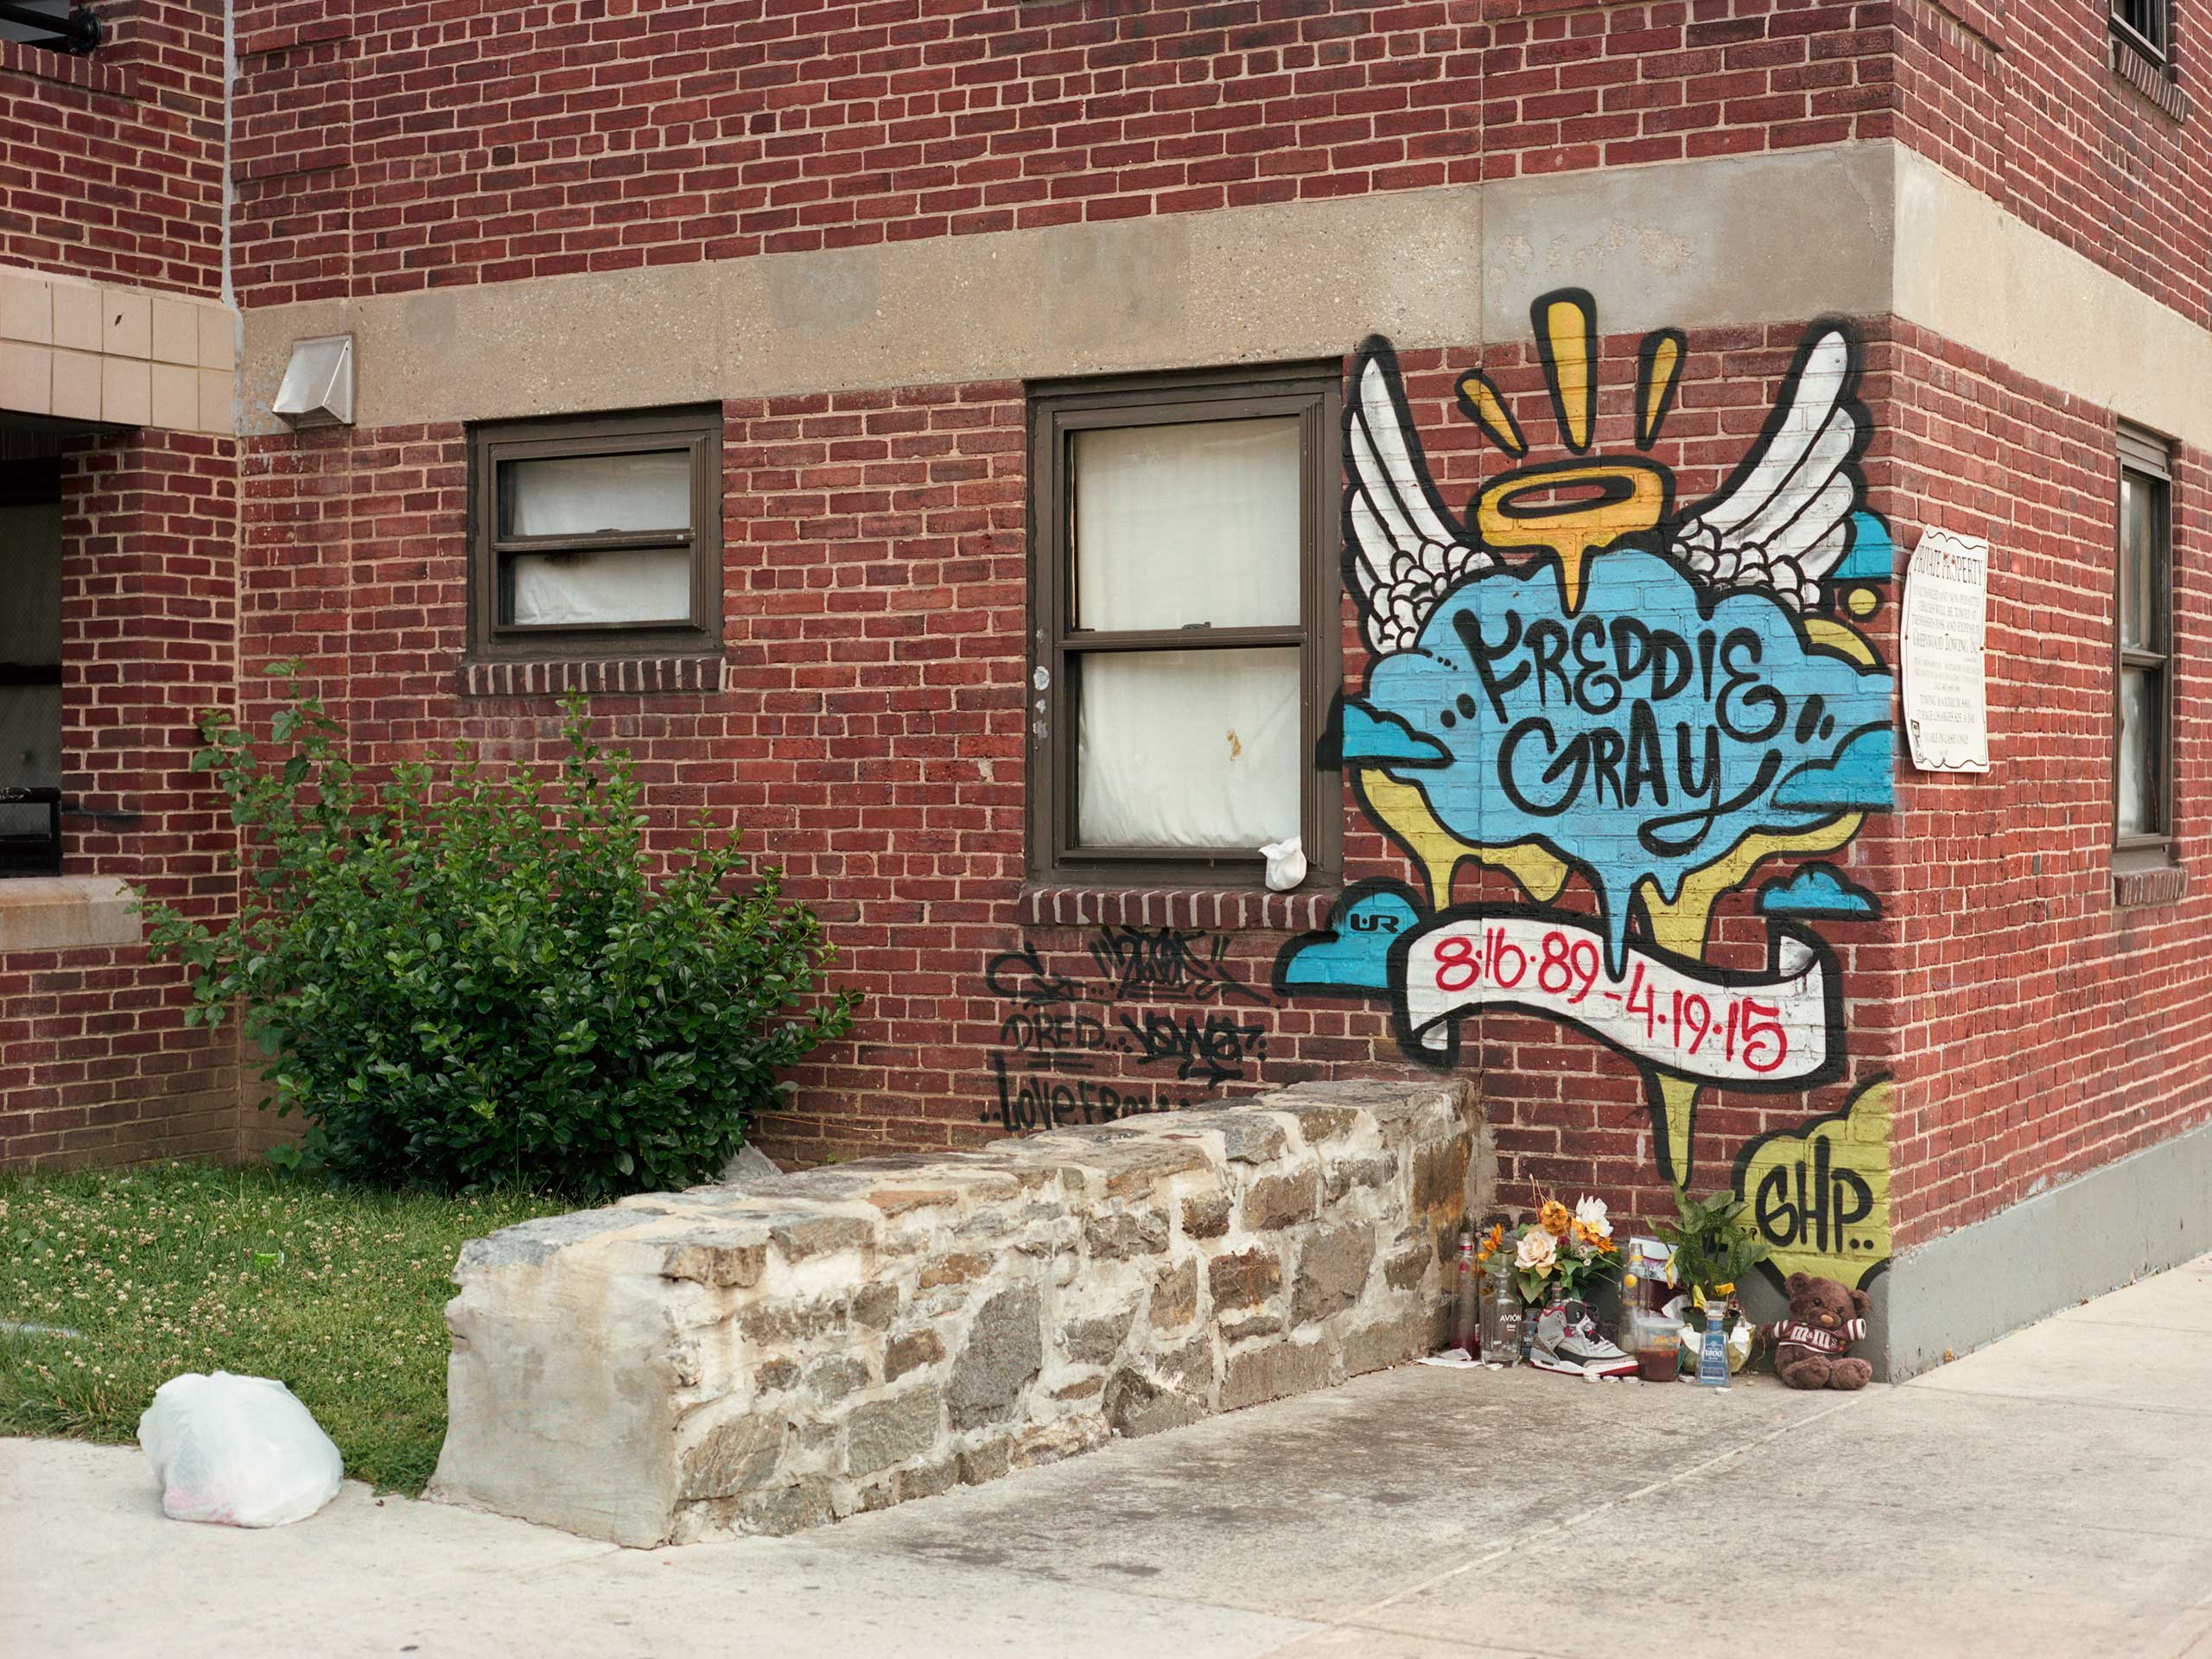 This is the exact location on Presbury Street near the Gilmor Homes housing project where Freddie Gray was thrown to the ground and arrested by Baltimore Police. The site is now a memorial with mementos frequent public gatherings.